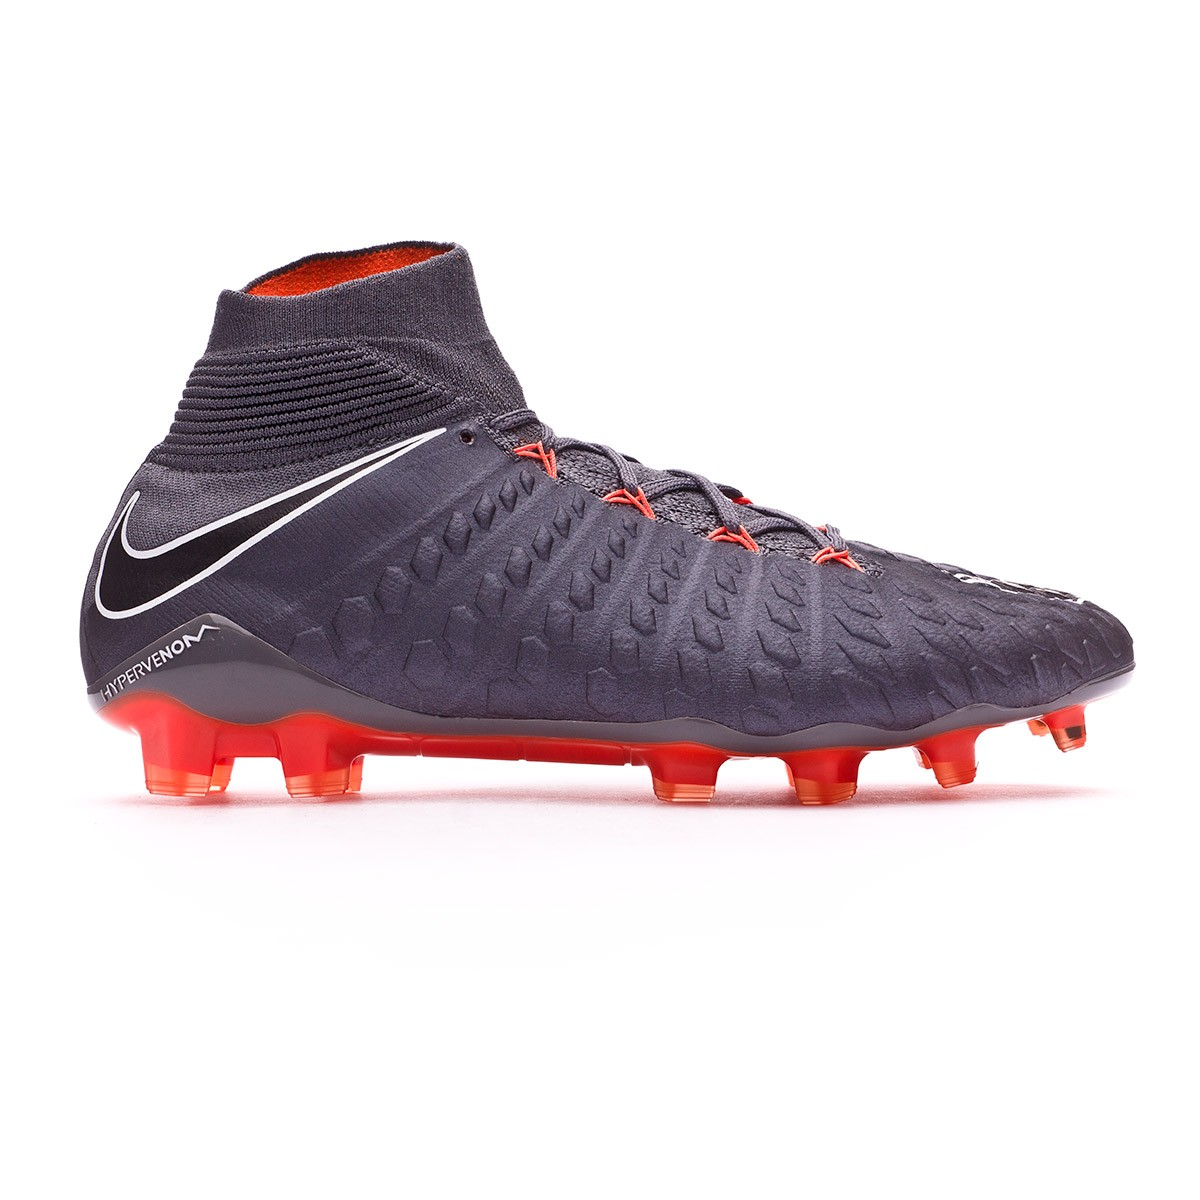 25a978629 Football Boots Nike Hypervenom Phantom III Elite DF FG Dark grey-Total  orange-White - Football store Fútbol Emotion